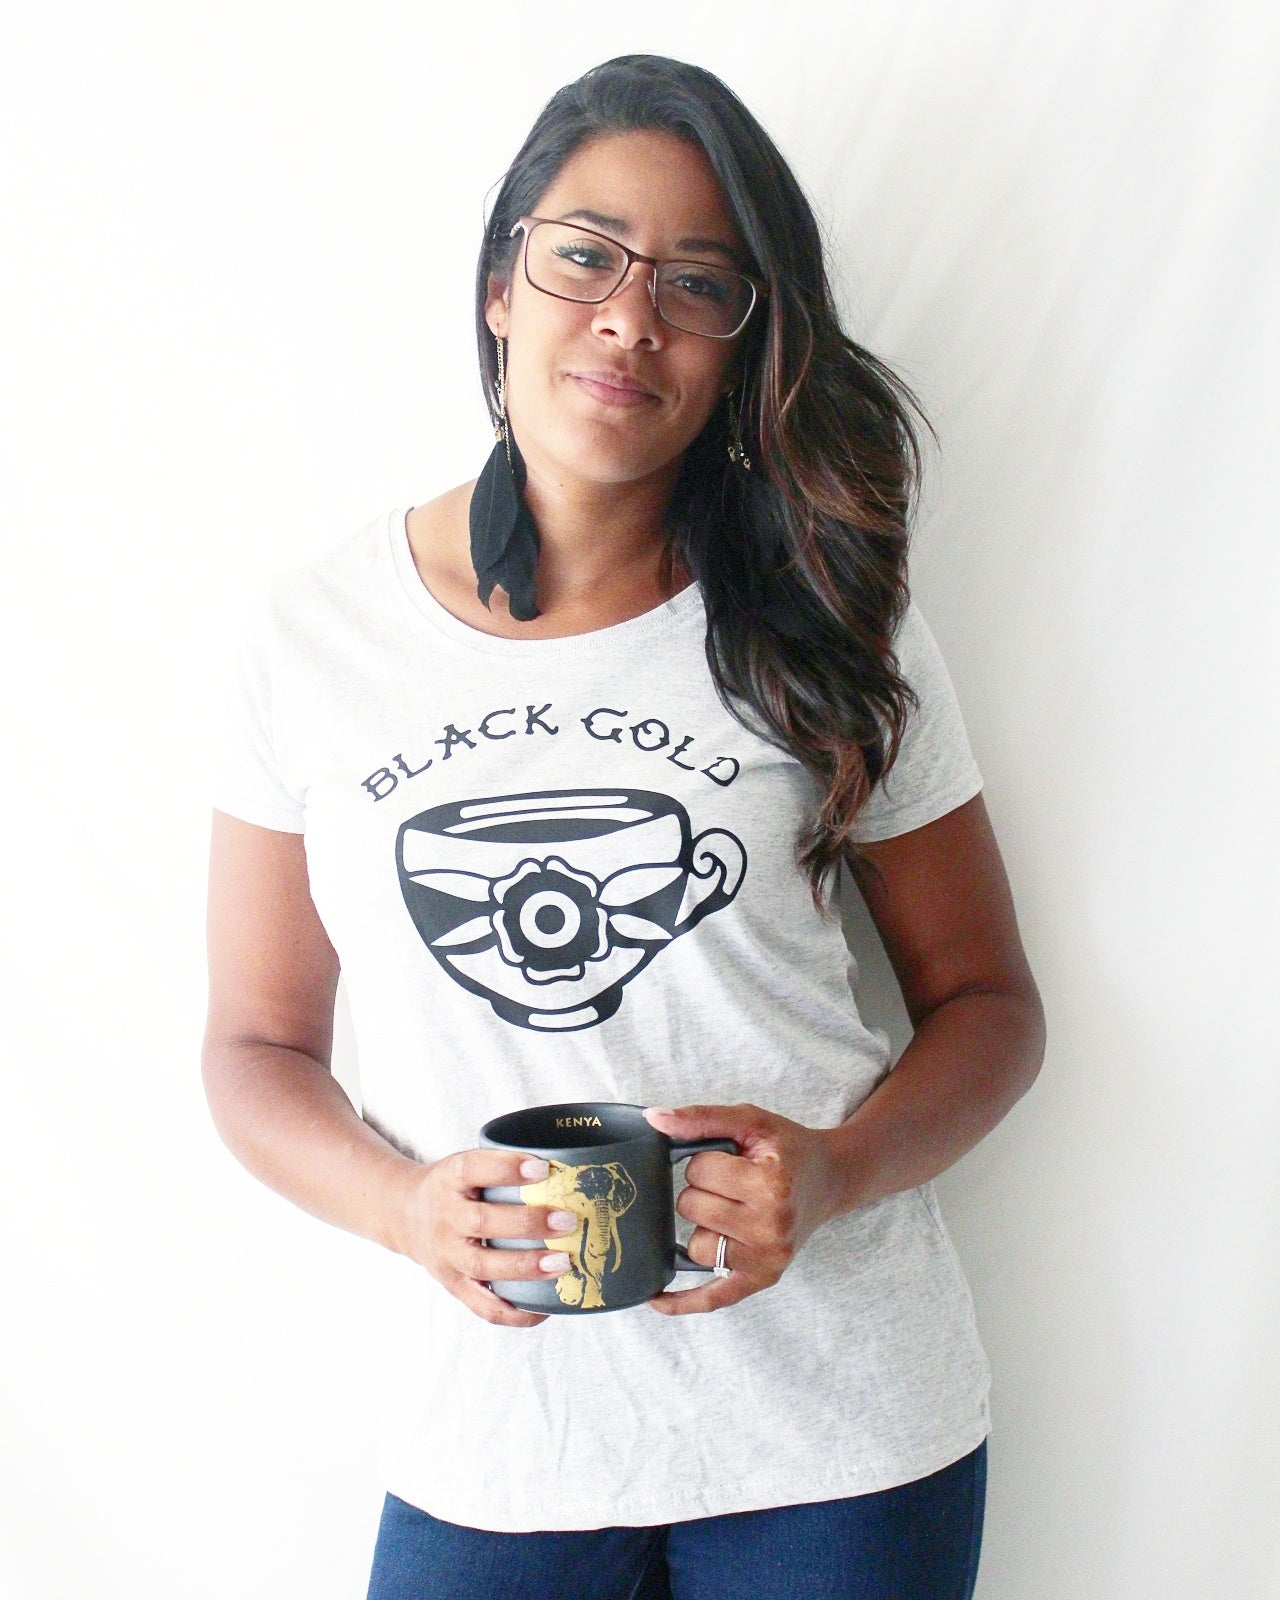 'Black gold' coffee shirt